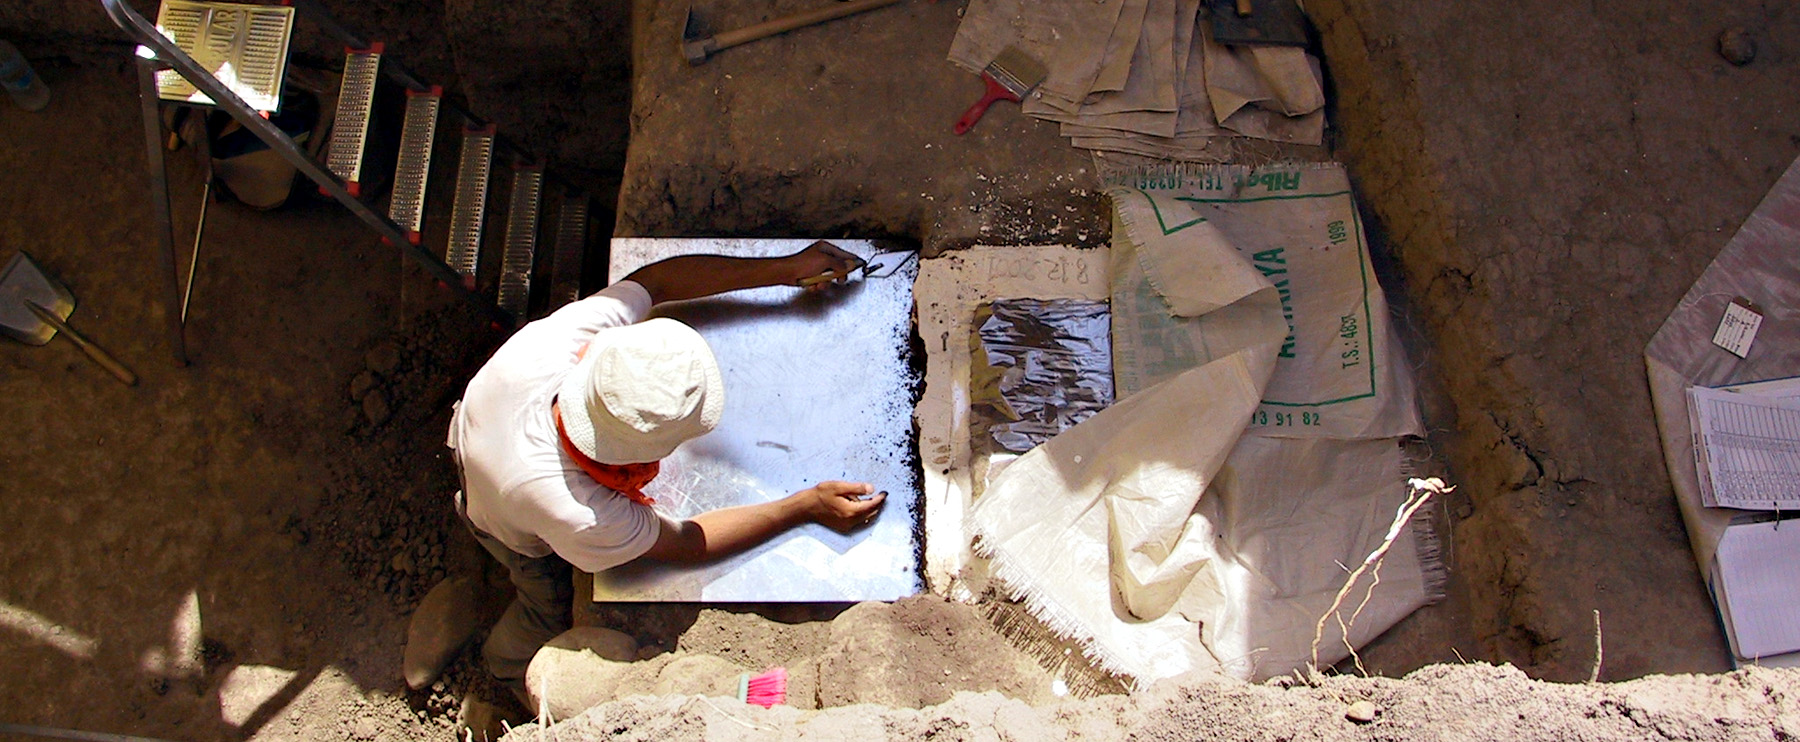 A turkish student works in a trench at the ancient village of Kenan Tepe, Turkey, site of an archaeology project led by the University of Utah.